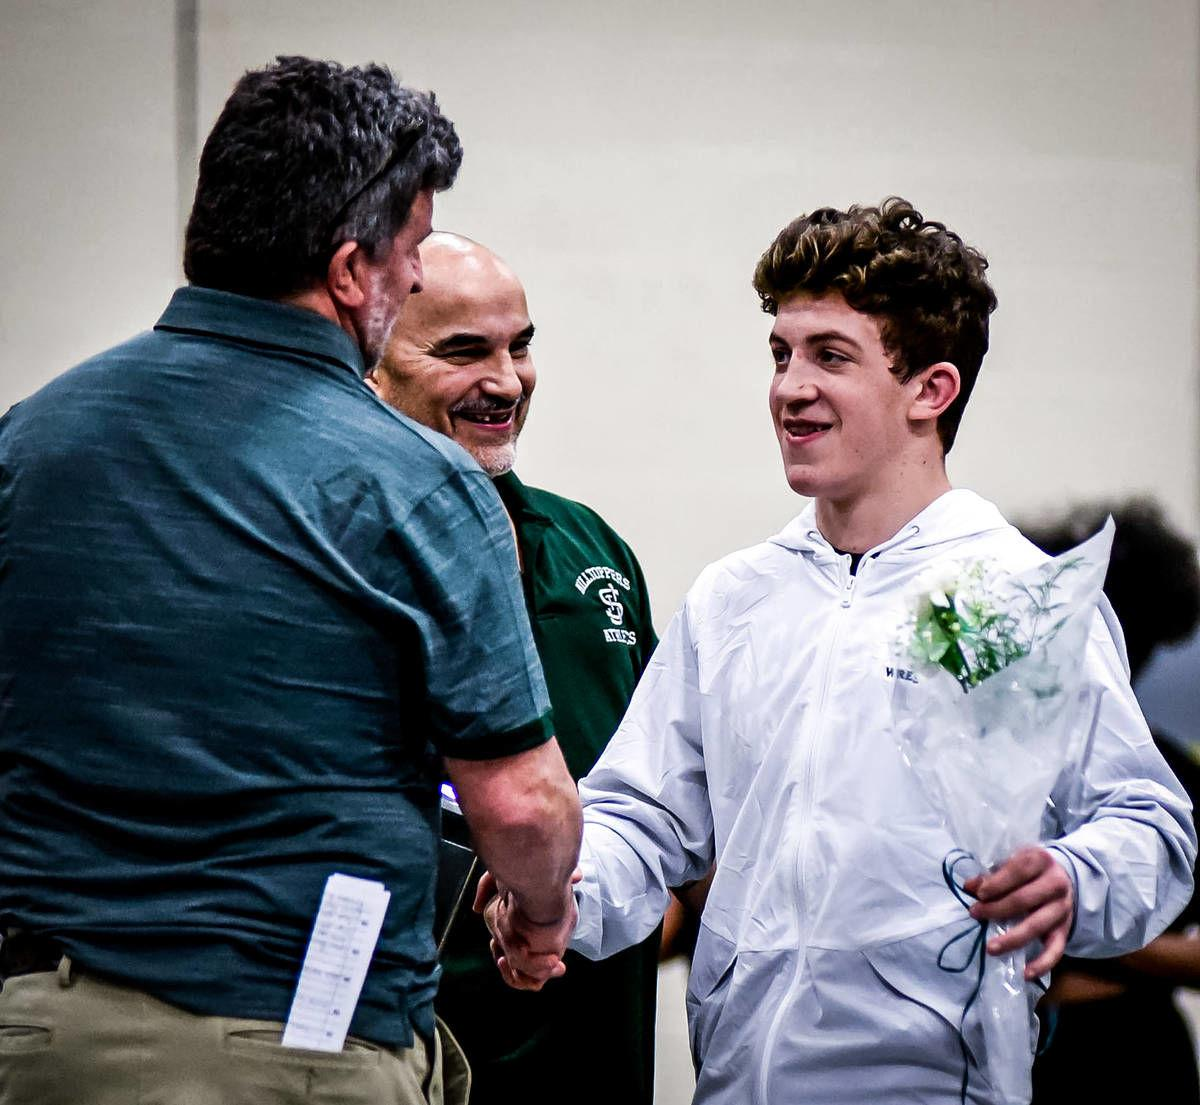 St. Johnsbury Academy's Hunter Verge: The Record's 2019-20 Wrestler of the Year